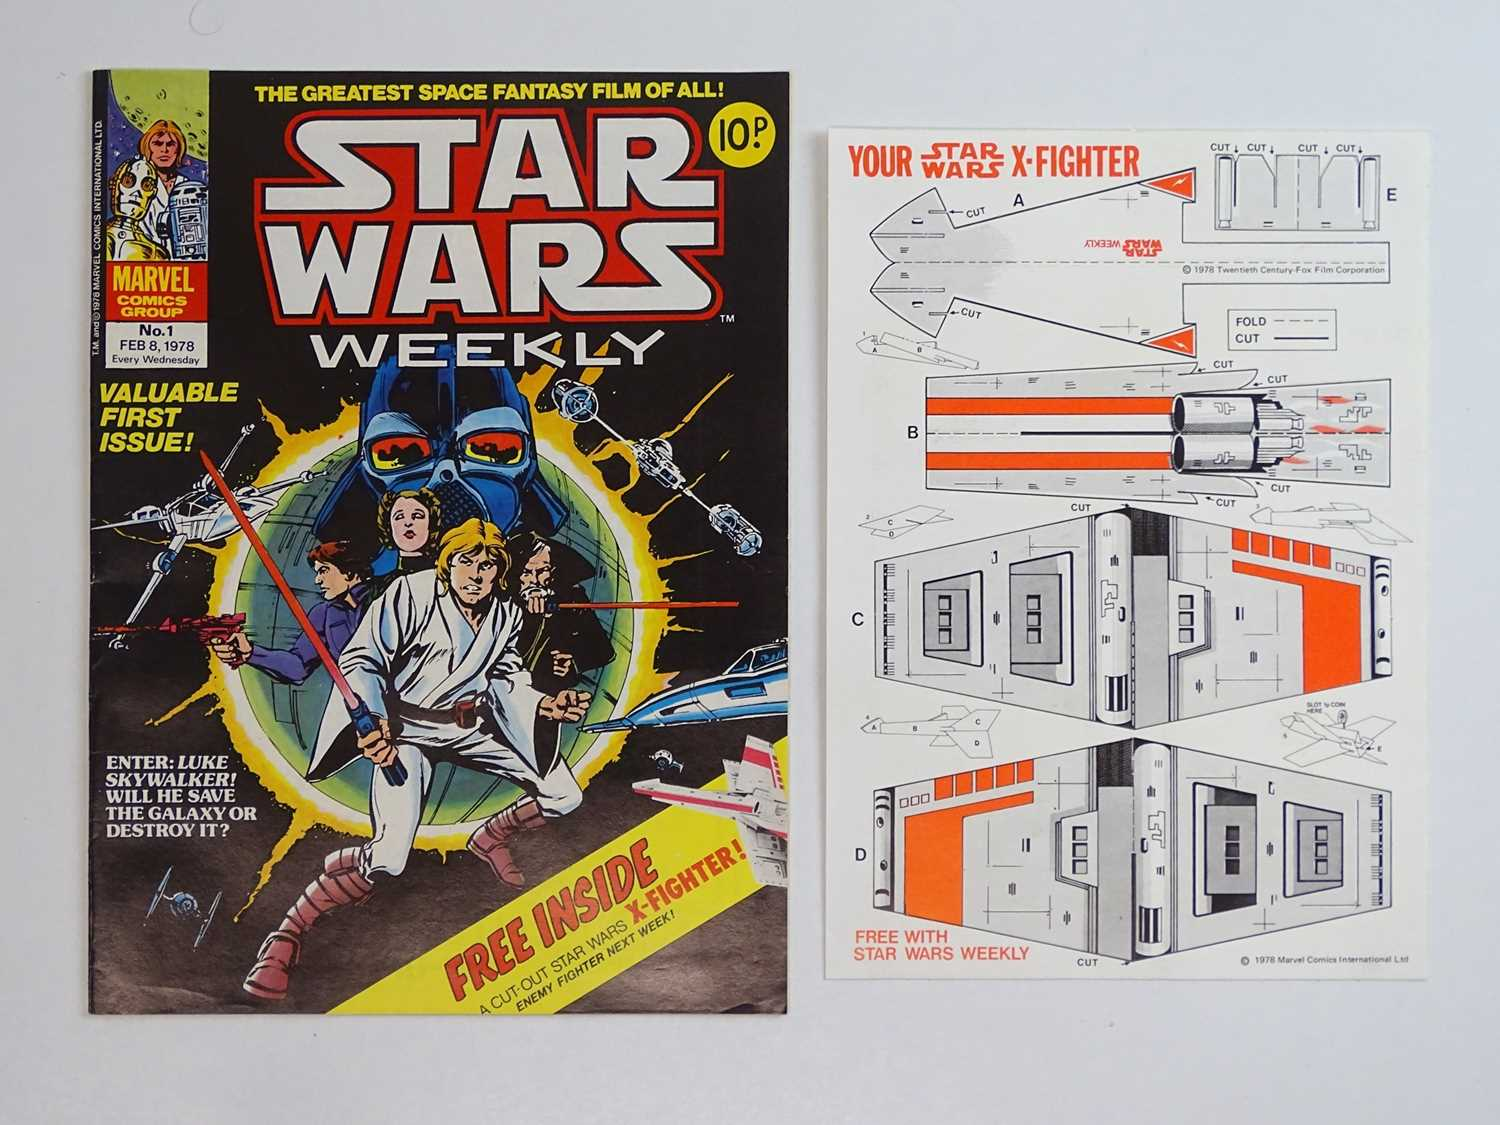 STAR WARS WEEKLY #1 to 165 - (165 in Lot) (1978/83 - BRITISH MARVEL) - Complete 165 issue run - Image 2 of 3